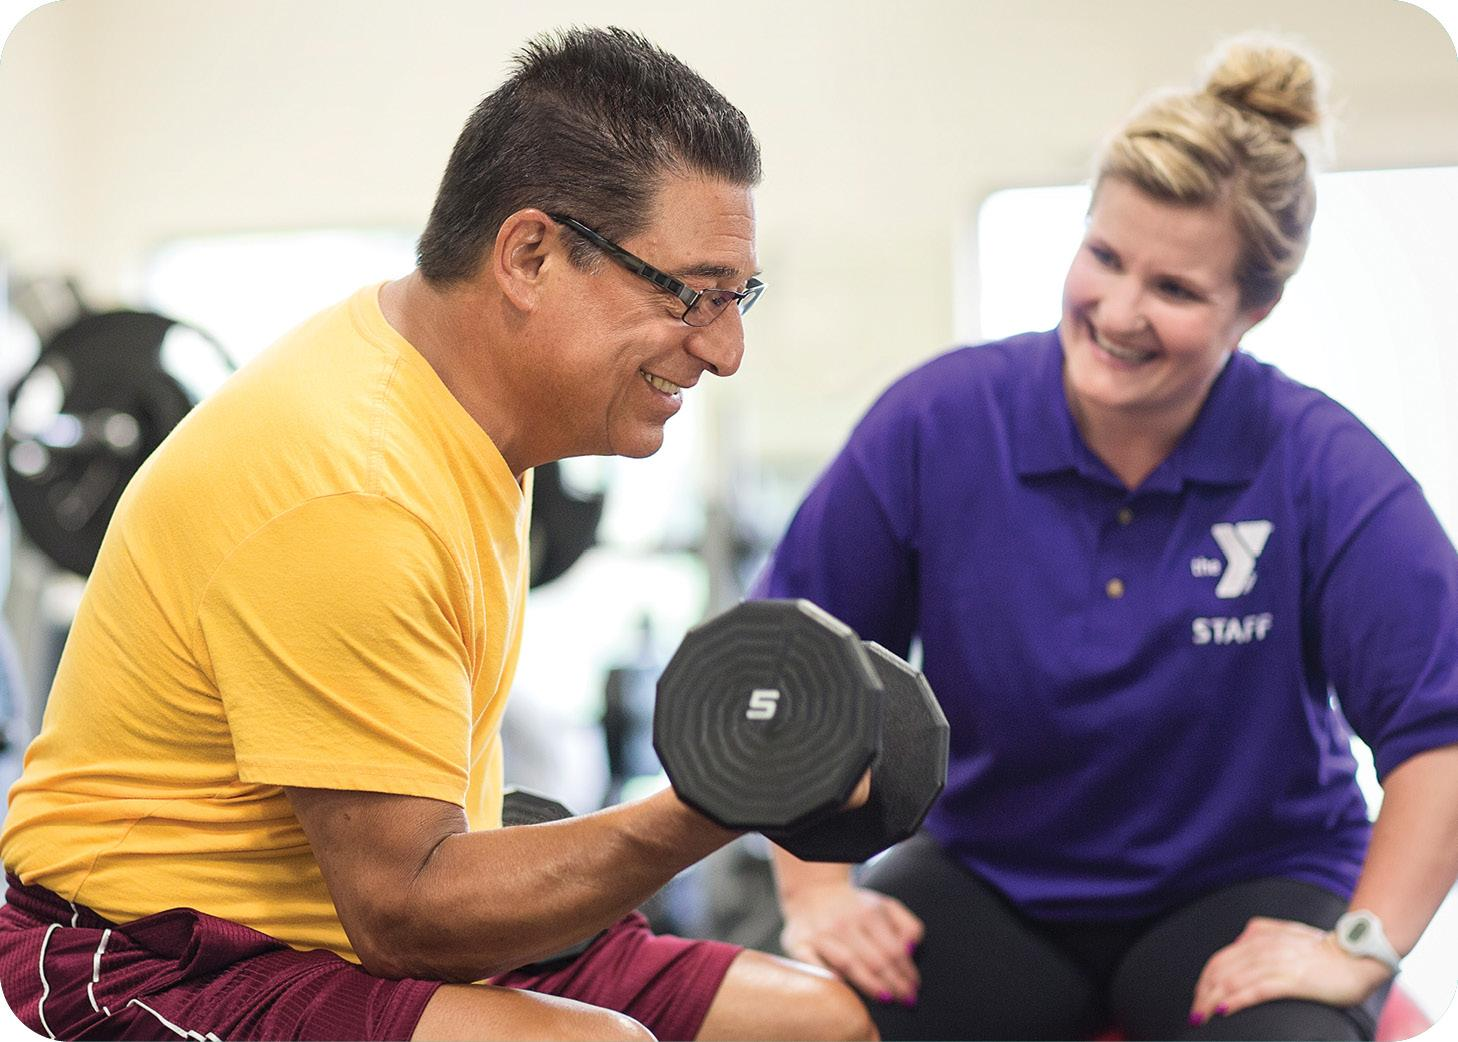 Personal Trainer working with a client